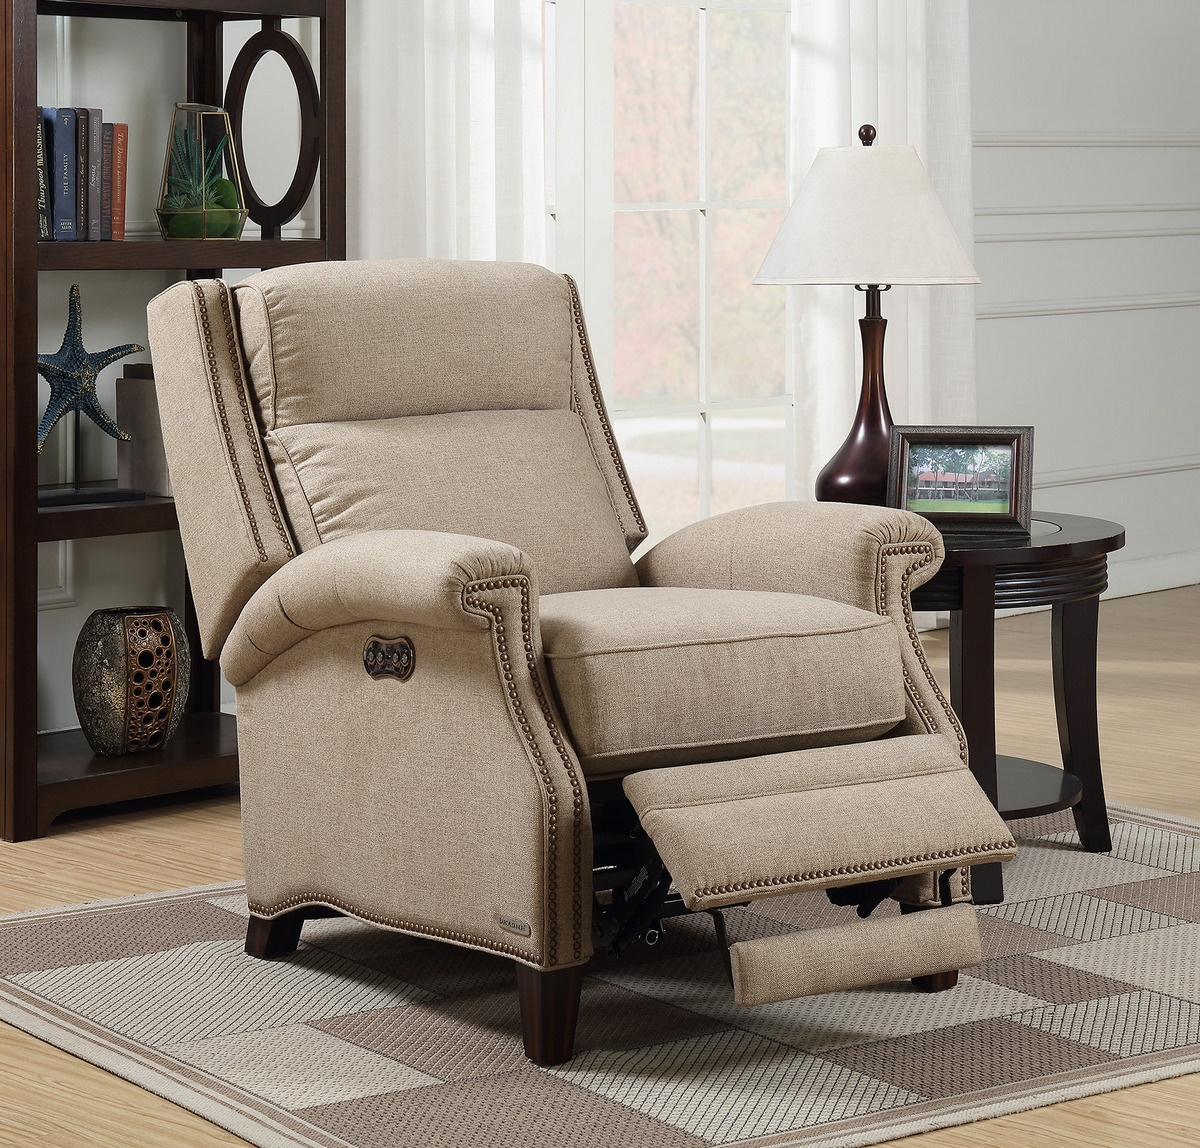 Barcalounger Barrett Power Recliner Power Headrest Sisal Fabric